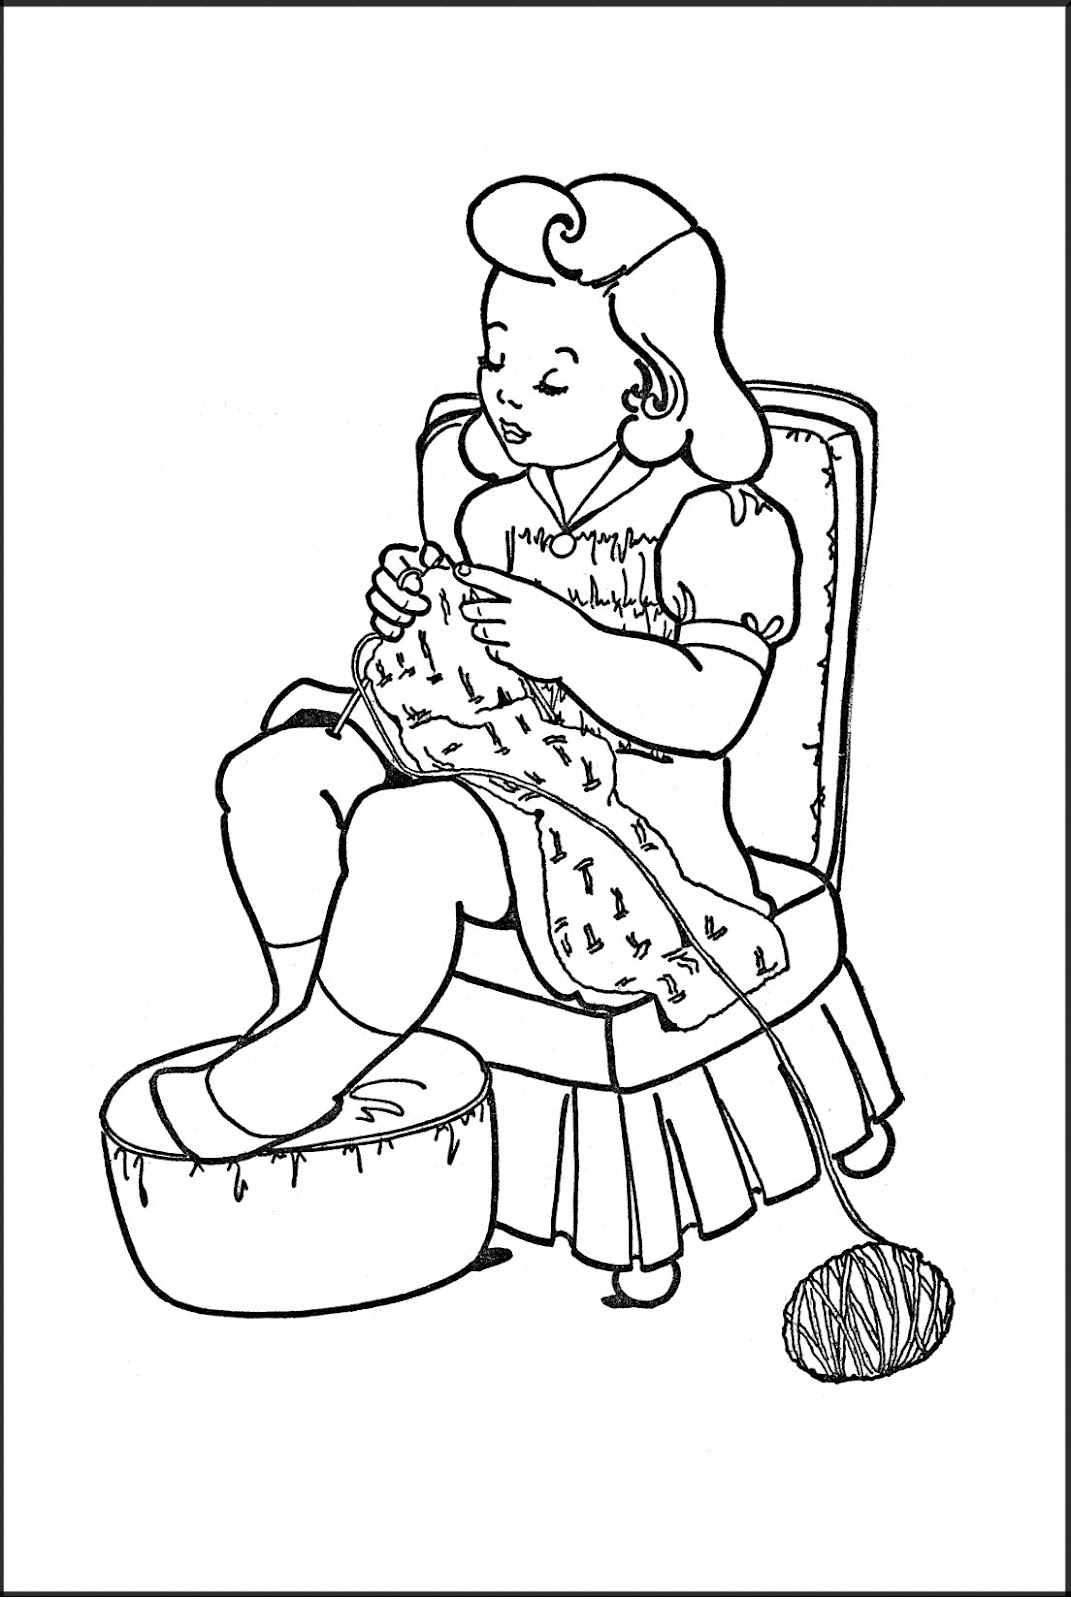 coloring clipart of kids reading black and white clipart 20 free cliparts coloring kids clipart of